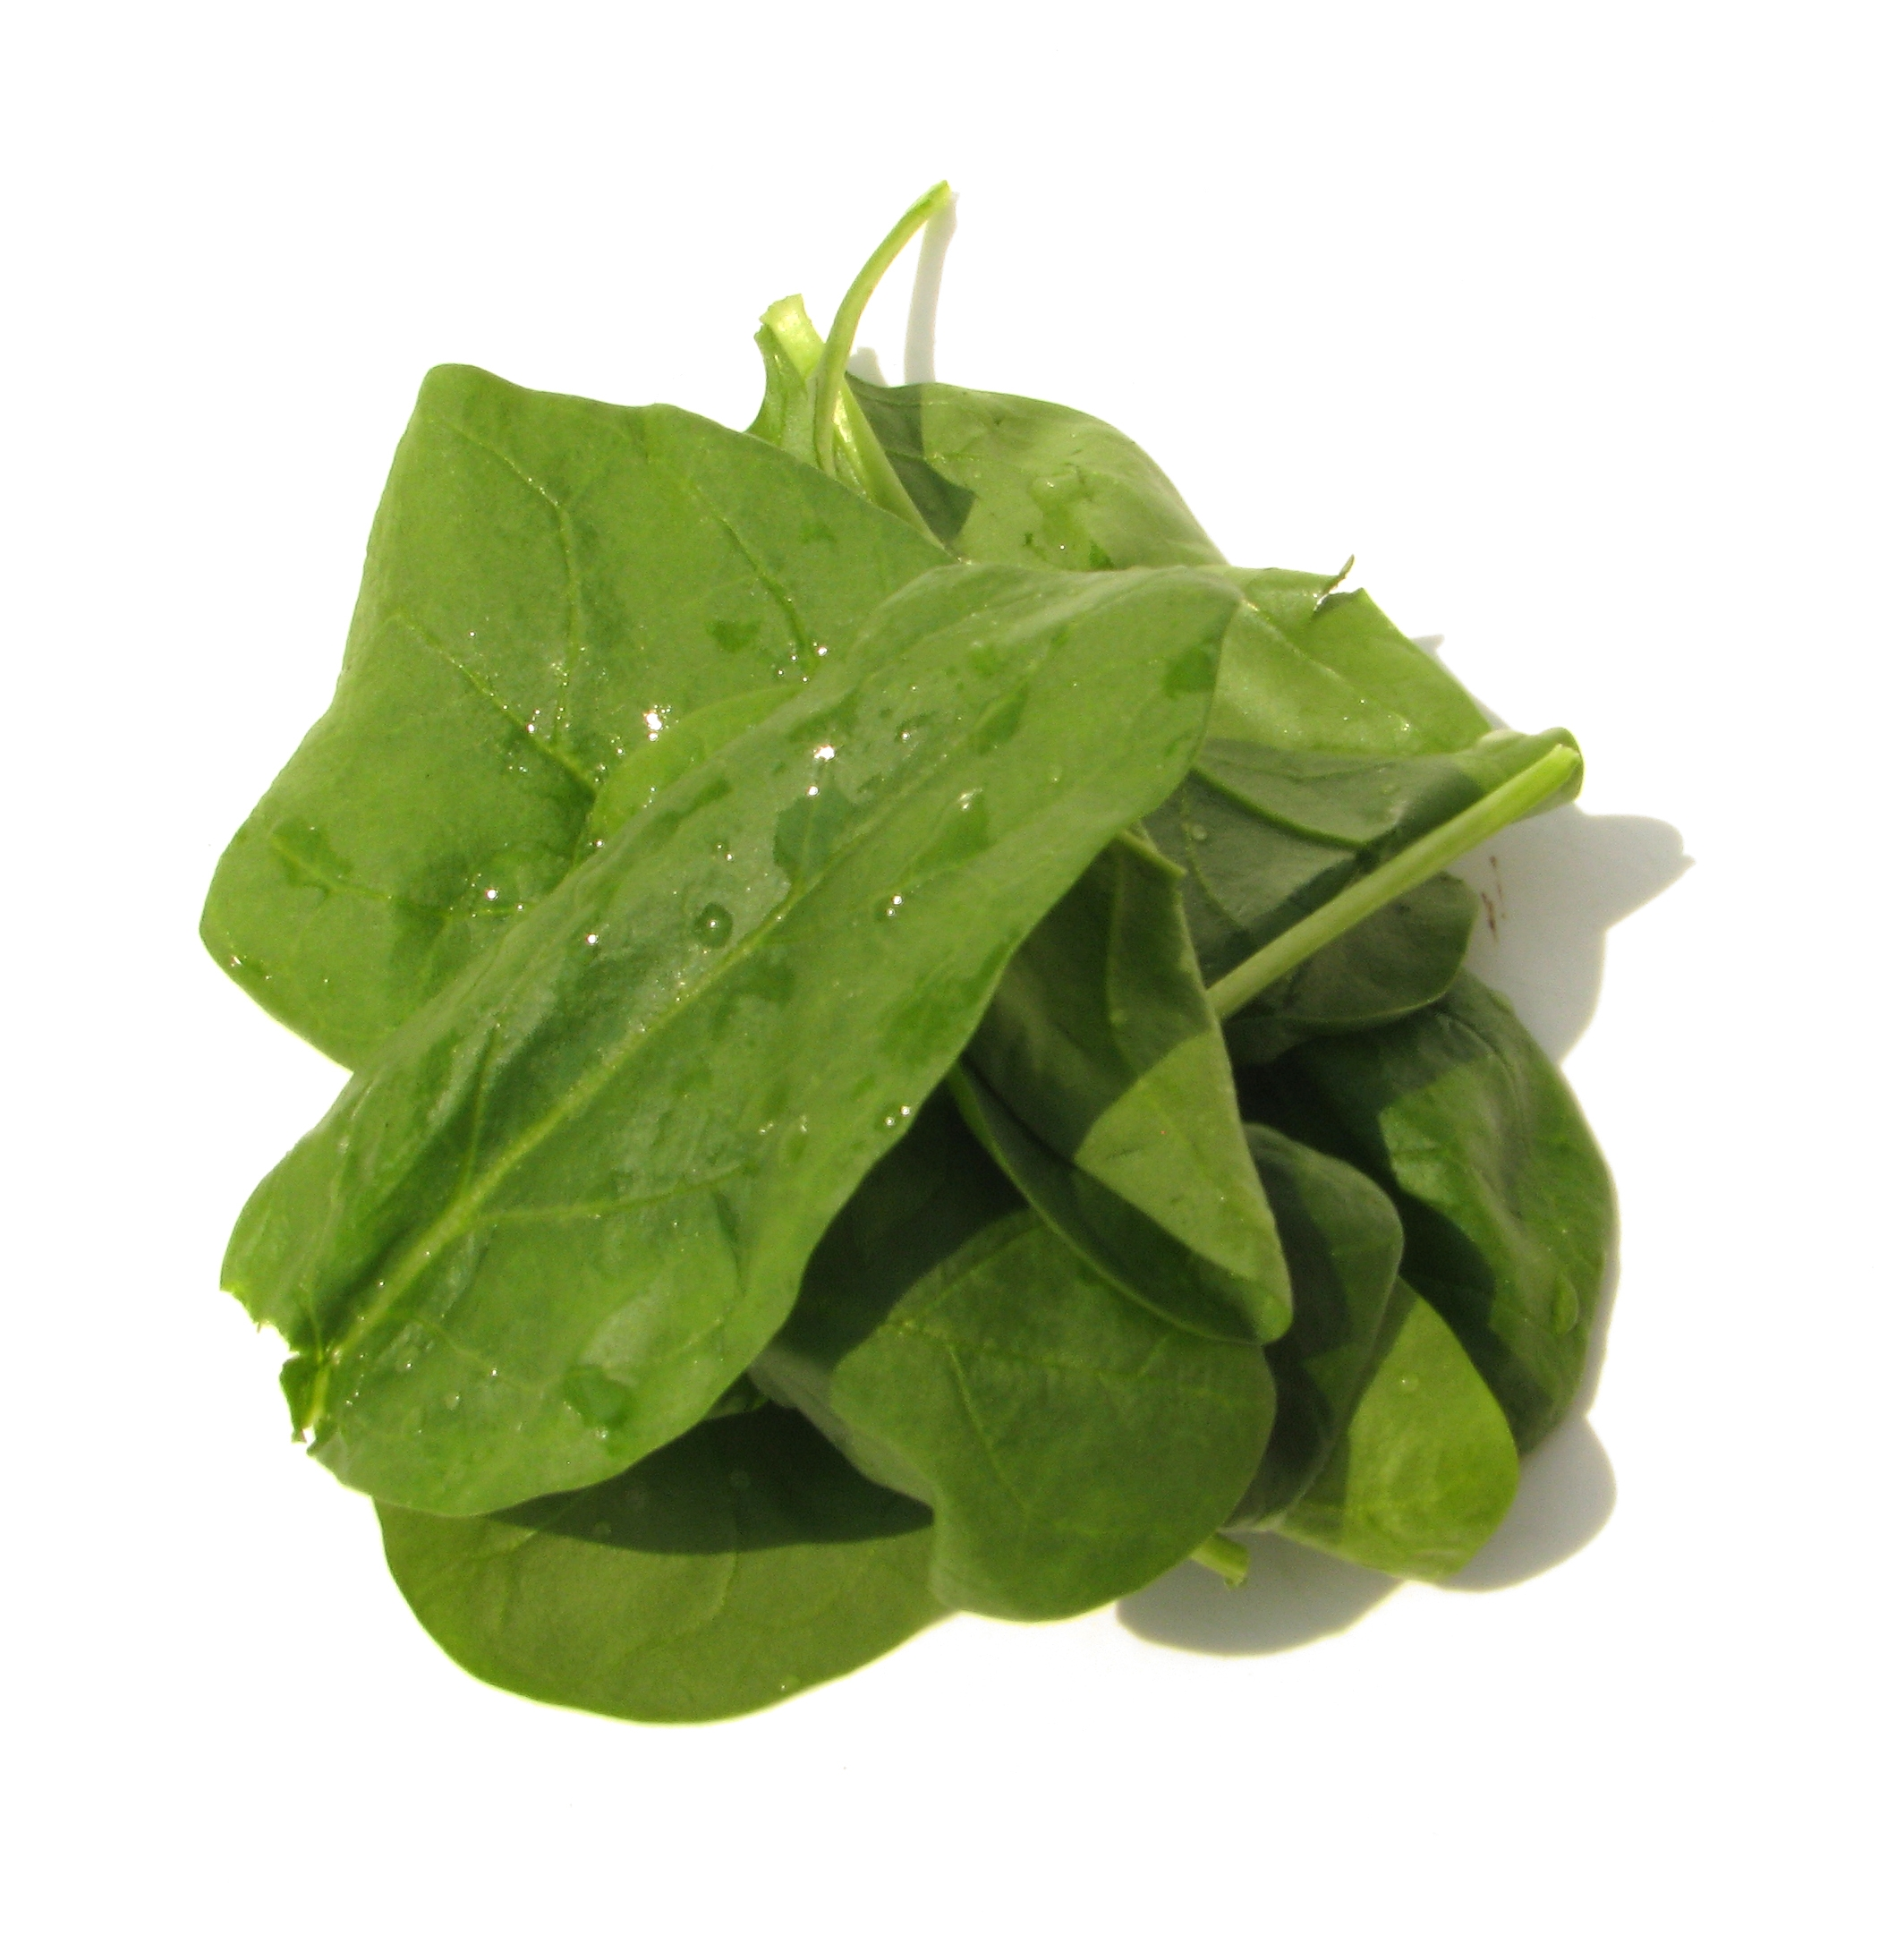 Freshly Picked Bunch of Spinach Leaves | gimmeges